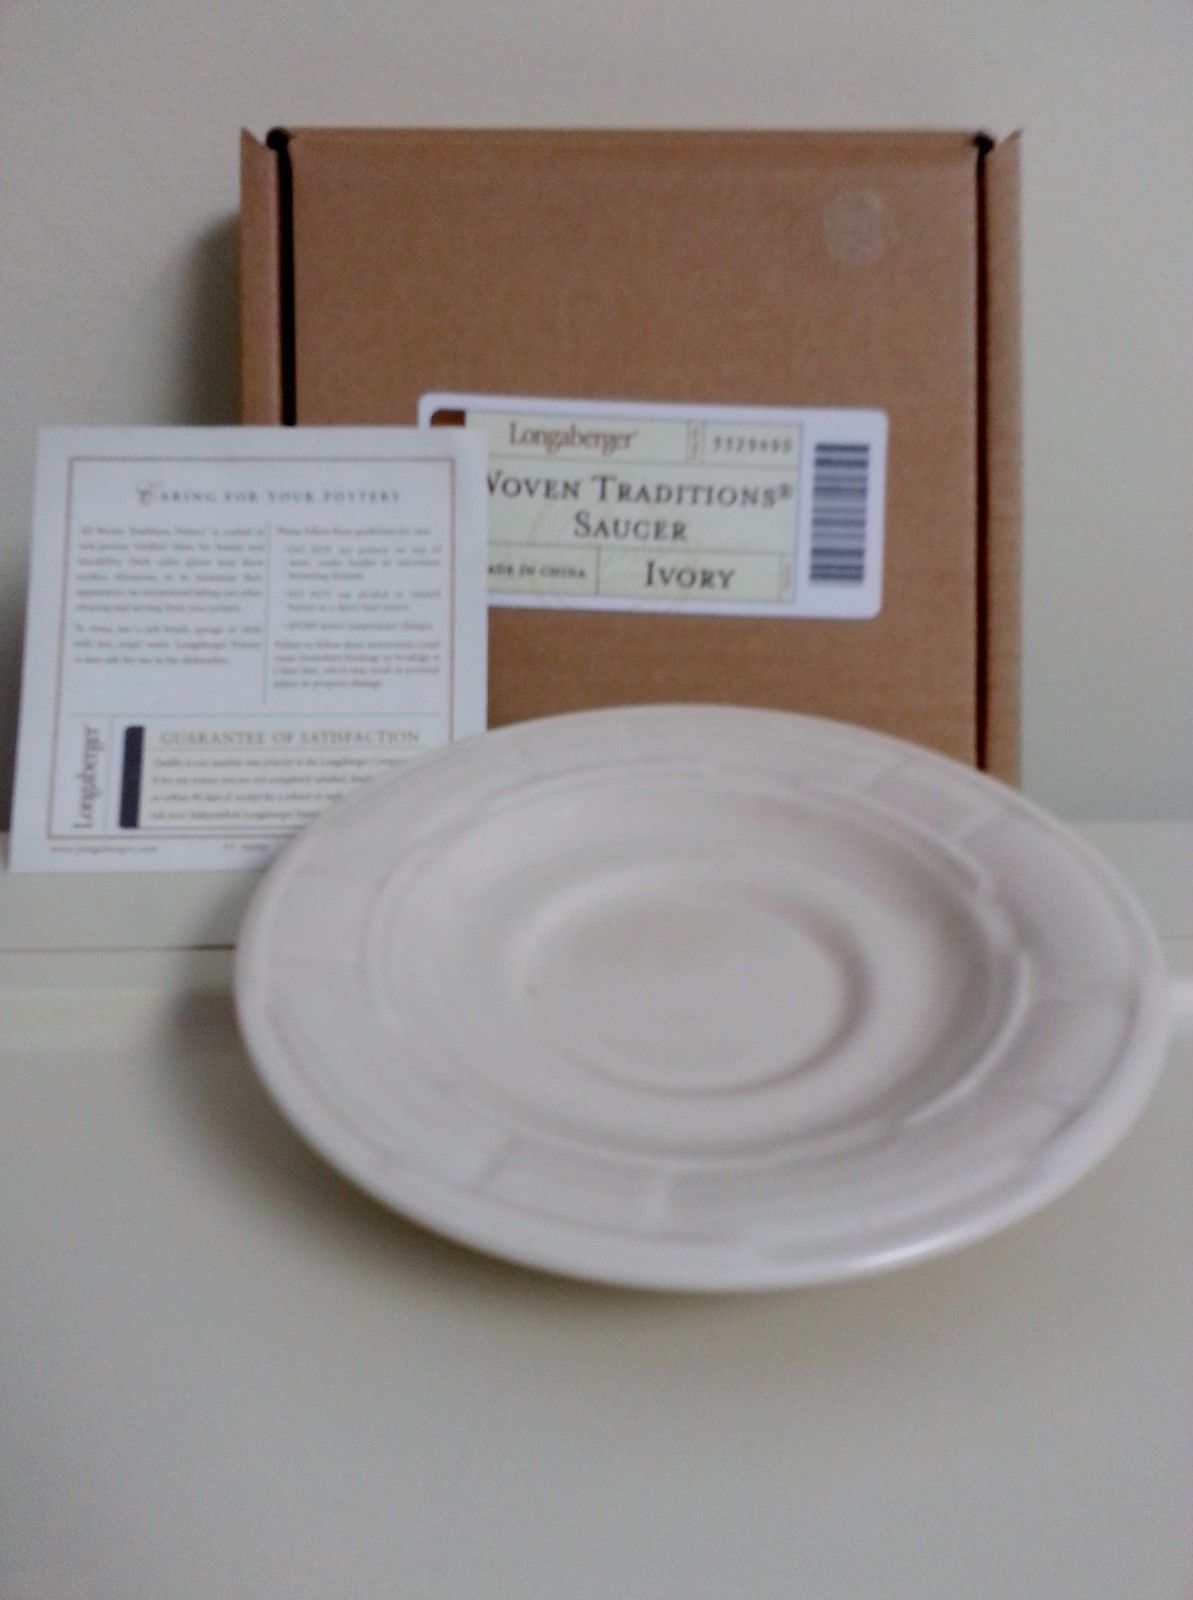 Primary image for Longaberger Pottery Ivory Saucer Snack Plate Set of 4 New In Boxes